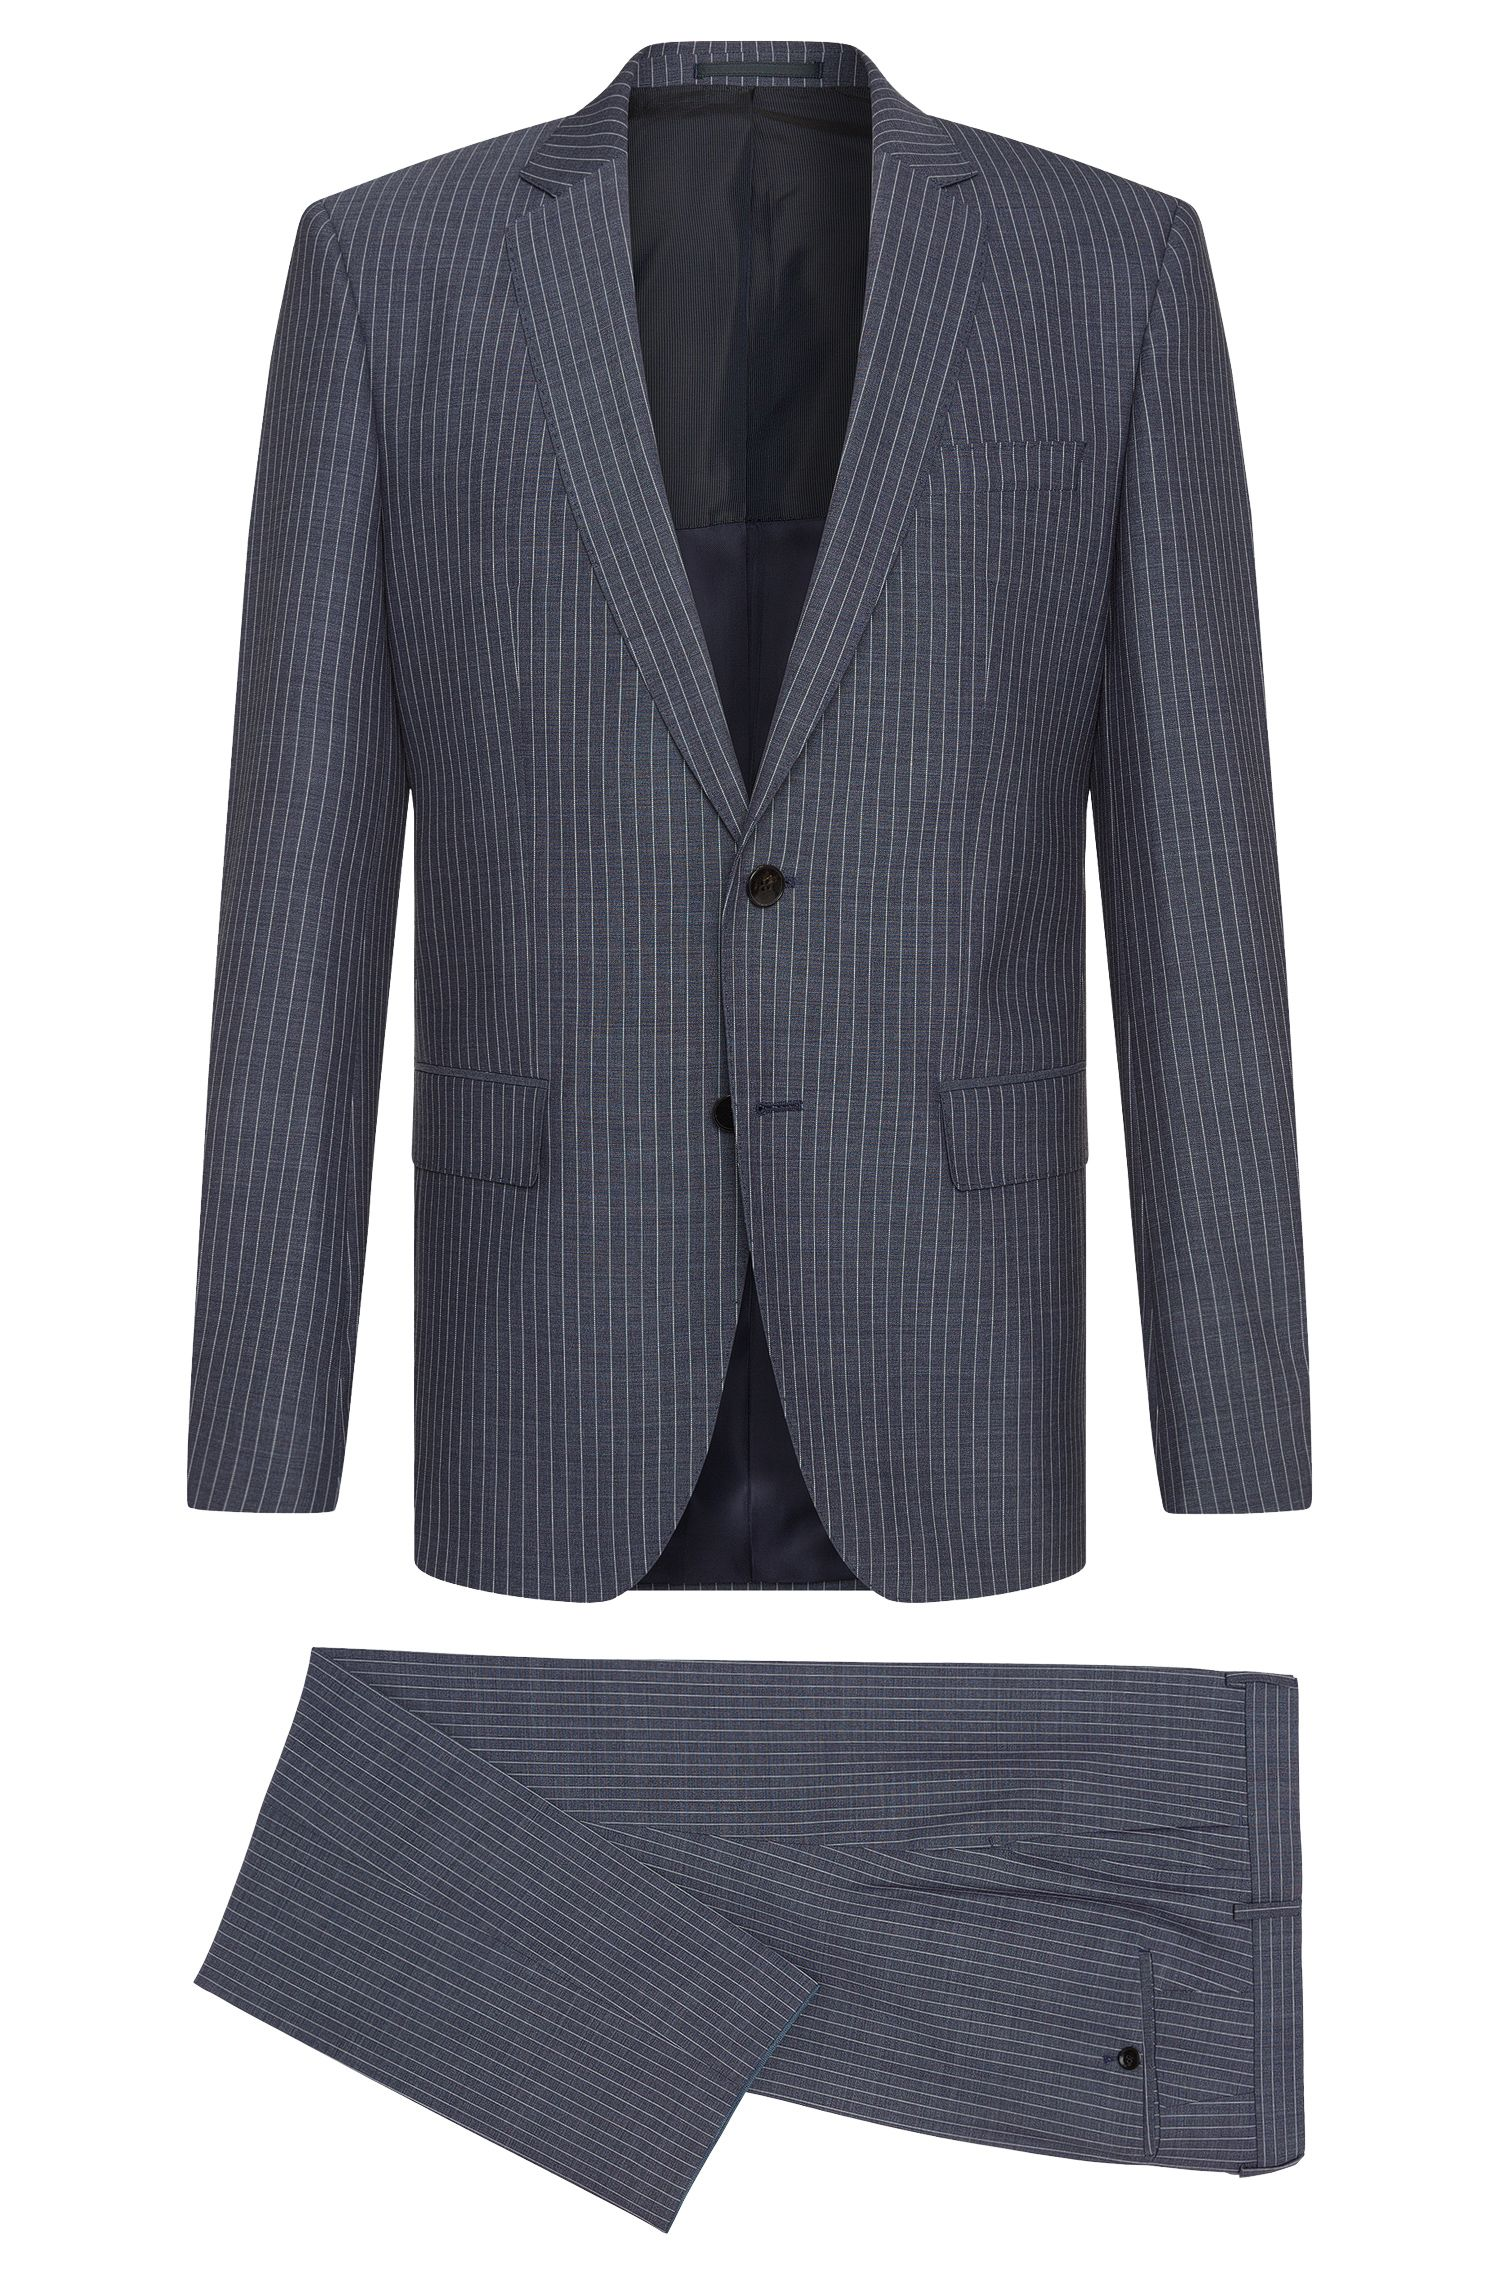 Pinstripe Italian Super 120 Virgin Wool Suit, Slim Fit | Huge/Genius